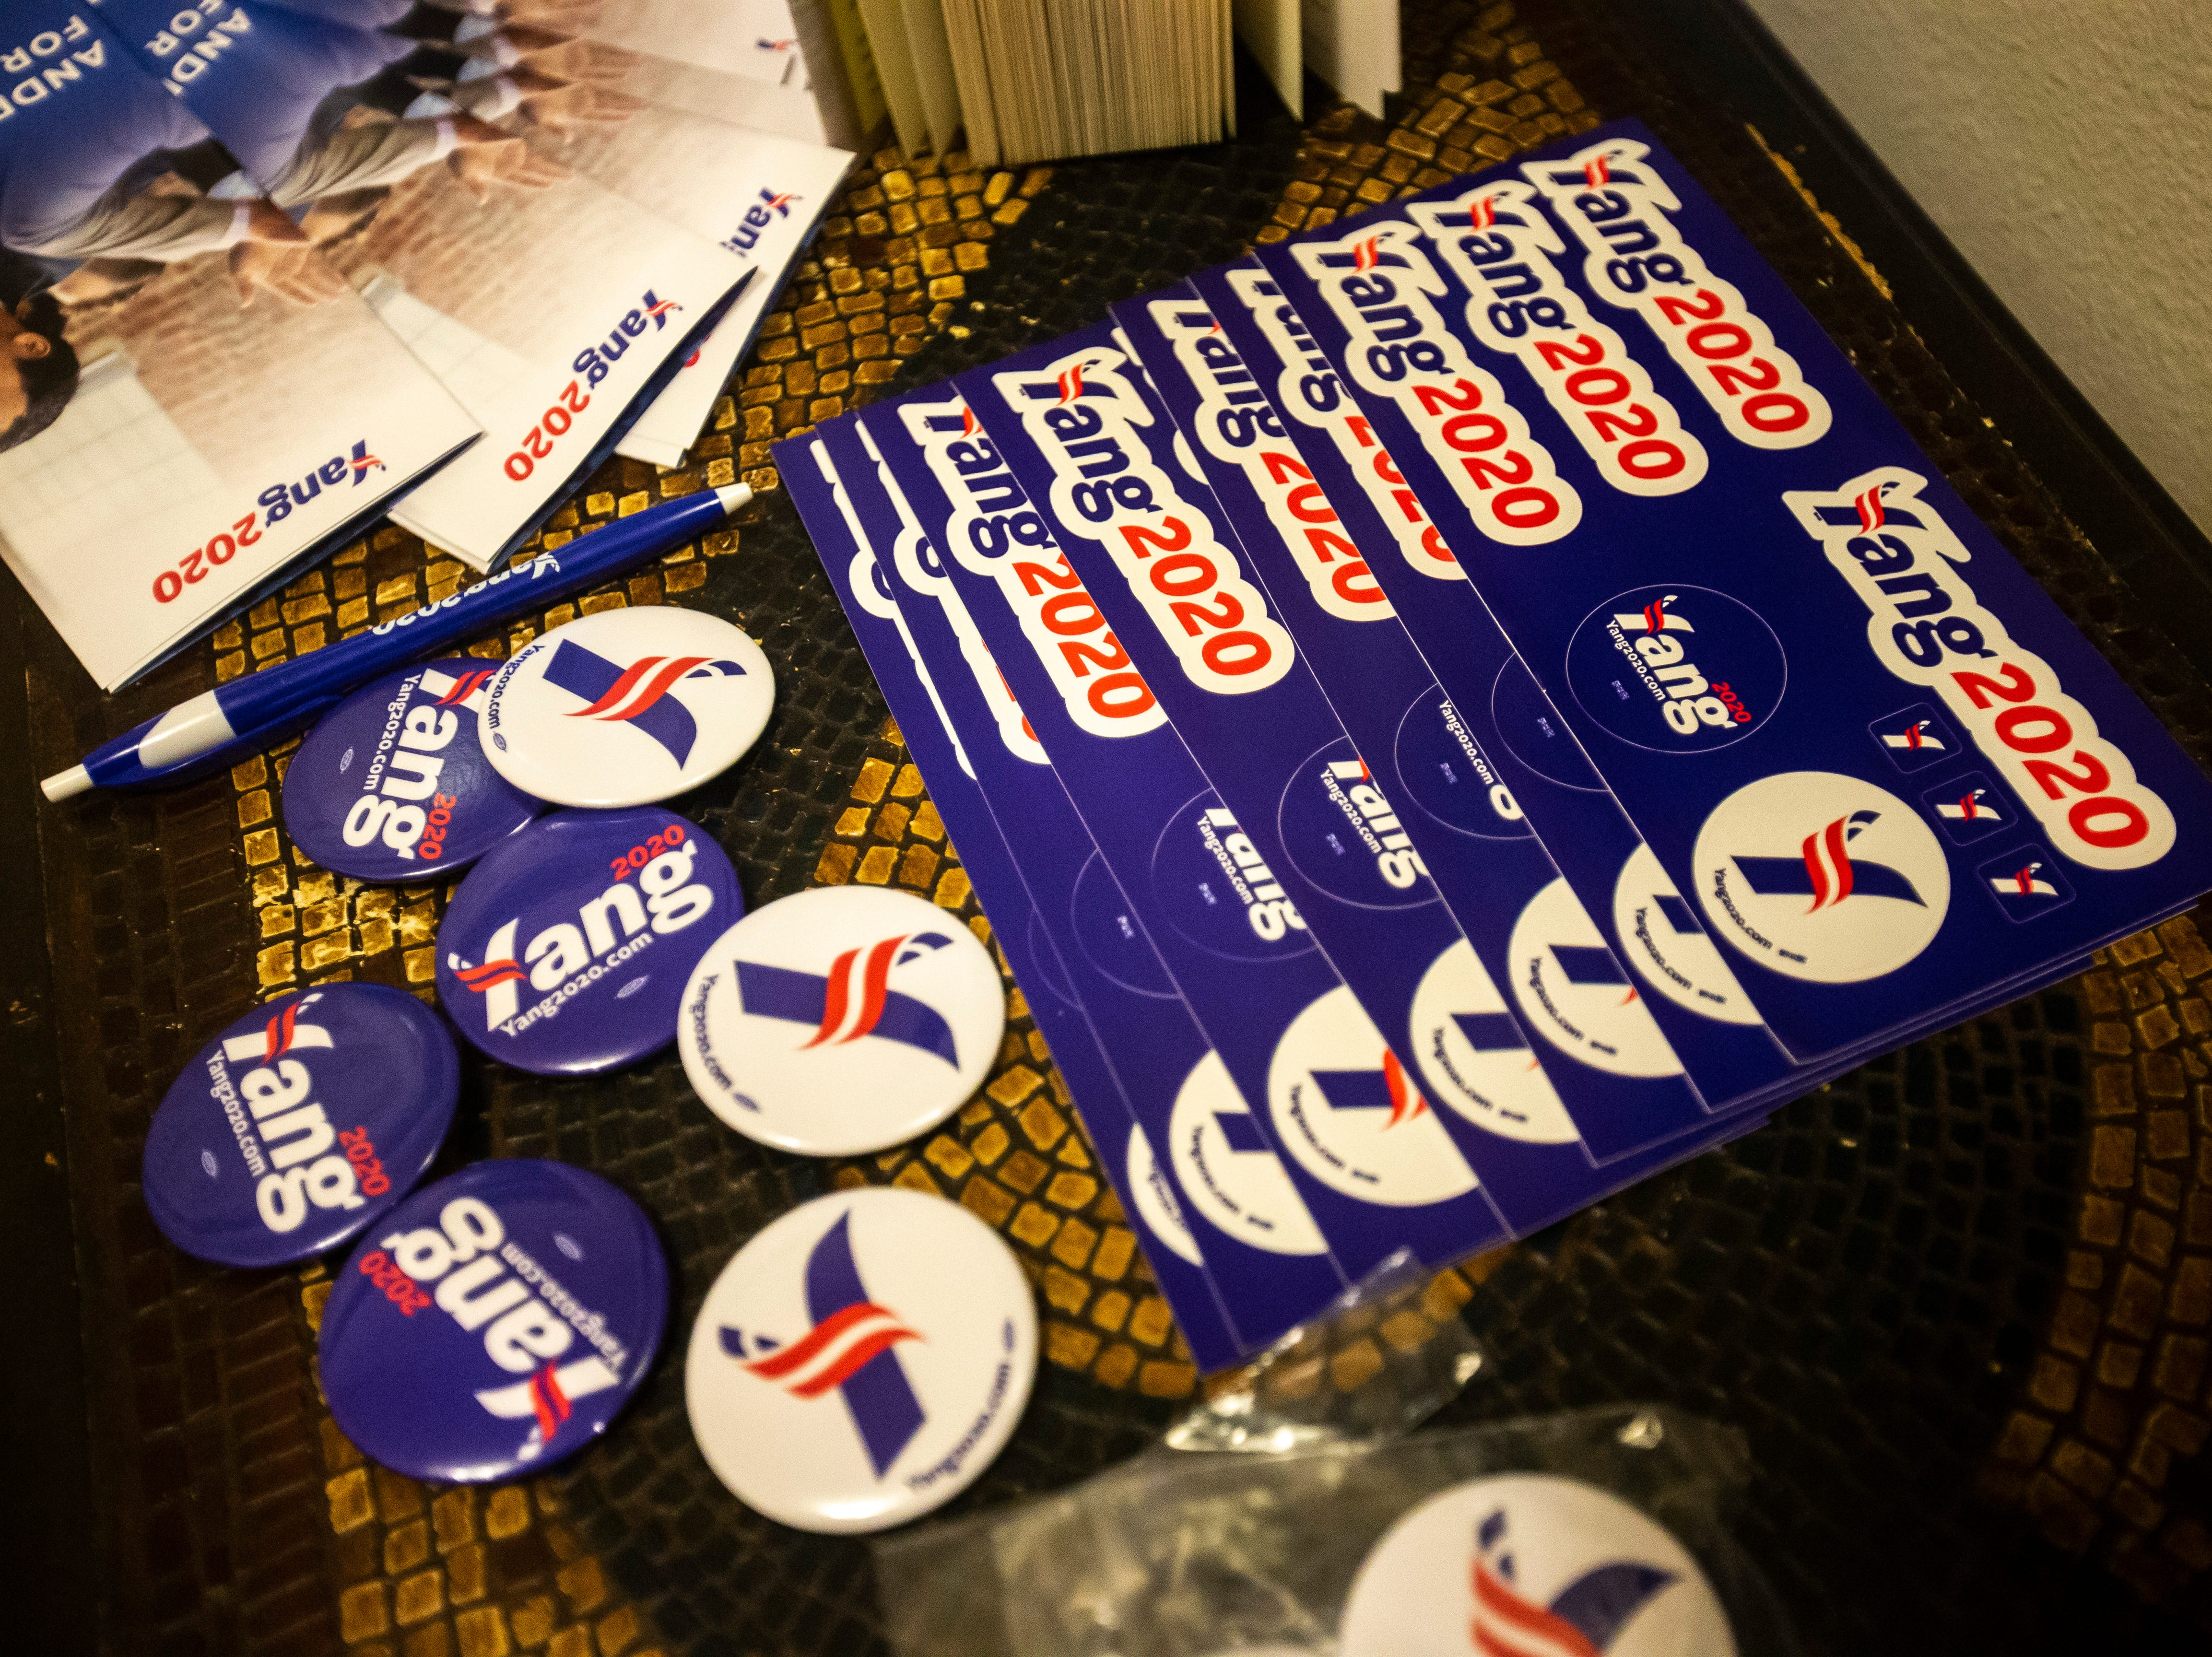 """Stickers and buttons for Andrew Yang, a 2020 Democratic presidential candidate, sit on a table at the """"Potluck Insurgency,"""" a dinner party organized by local activists, on Sunday, March 10, 2019, at a home in Iowa City, Iowa."""